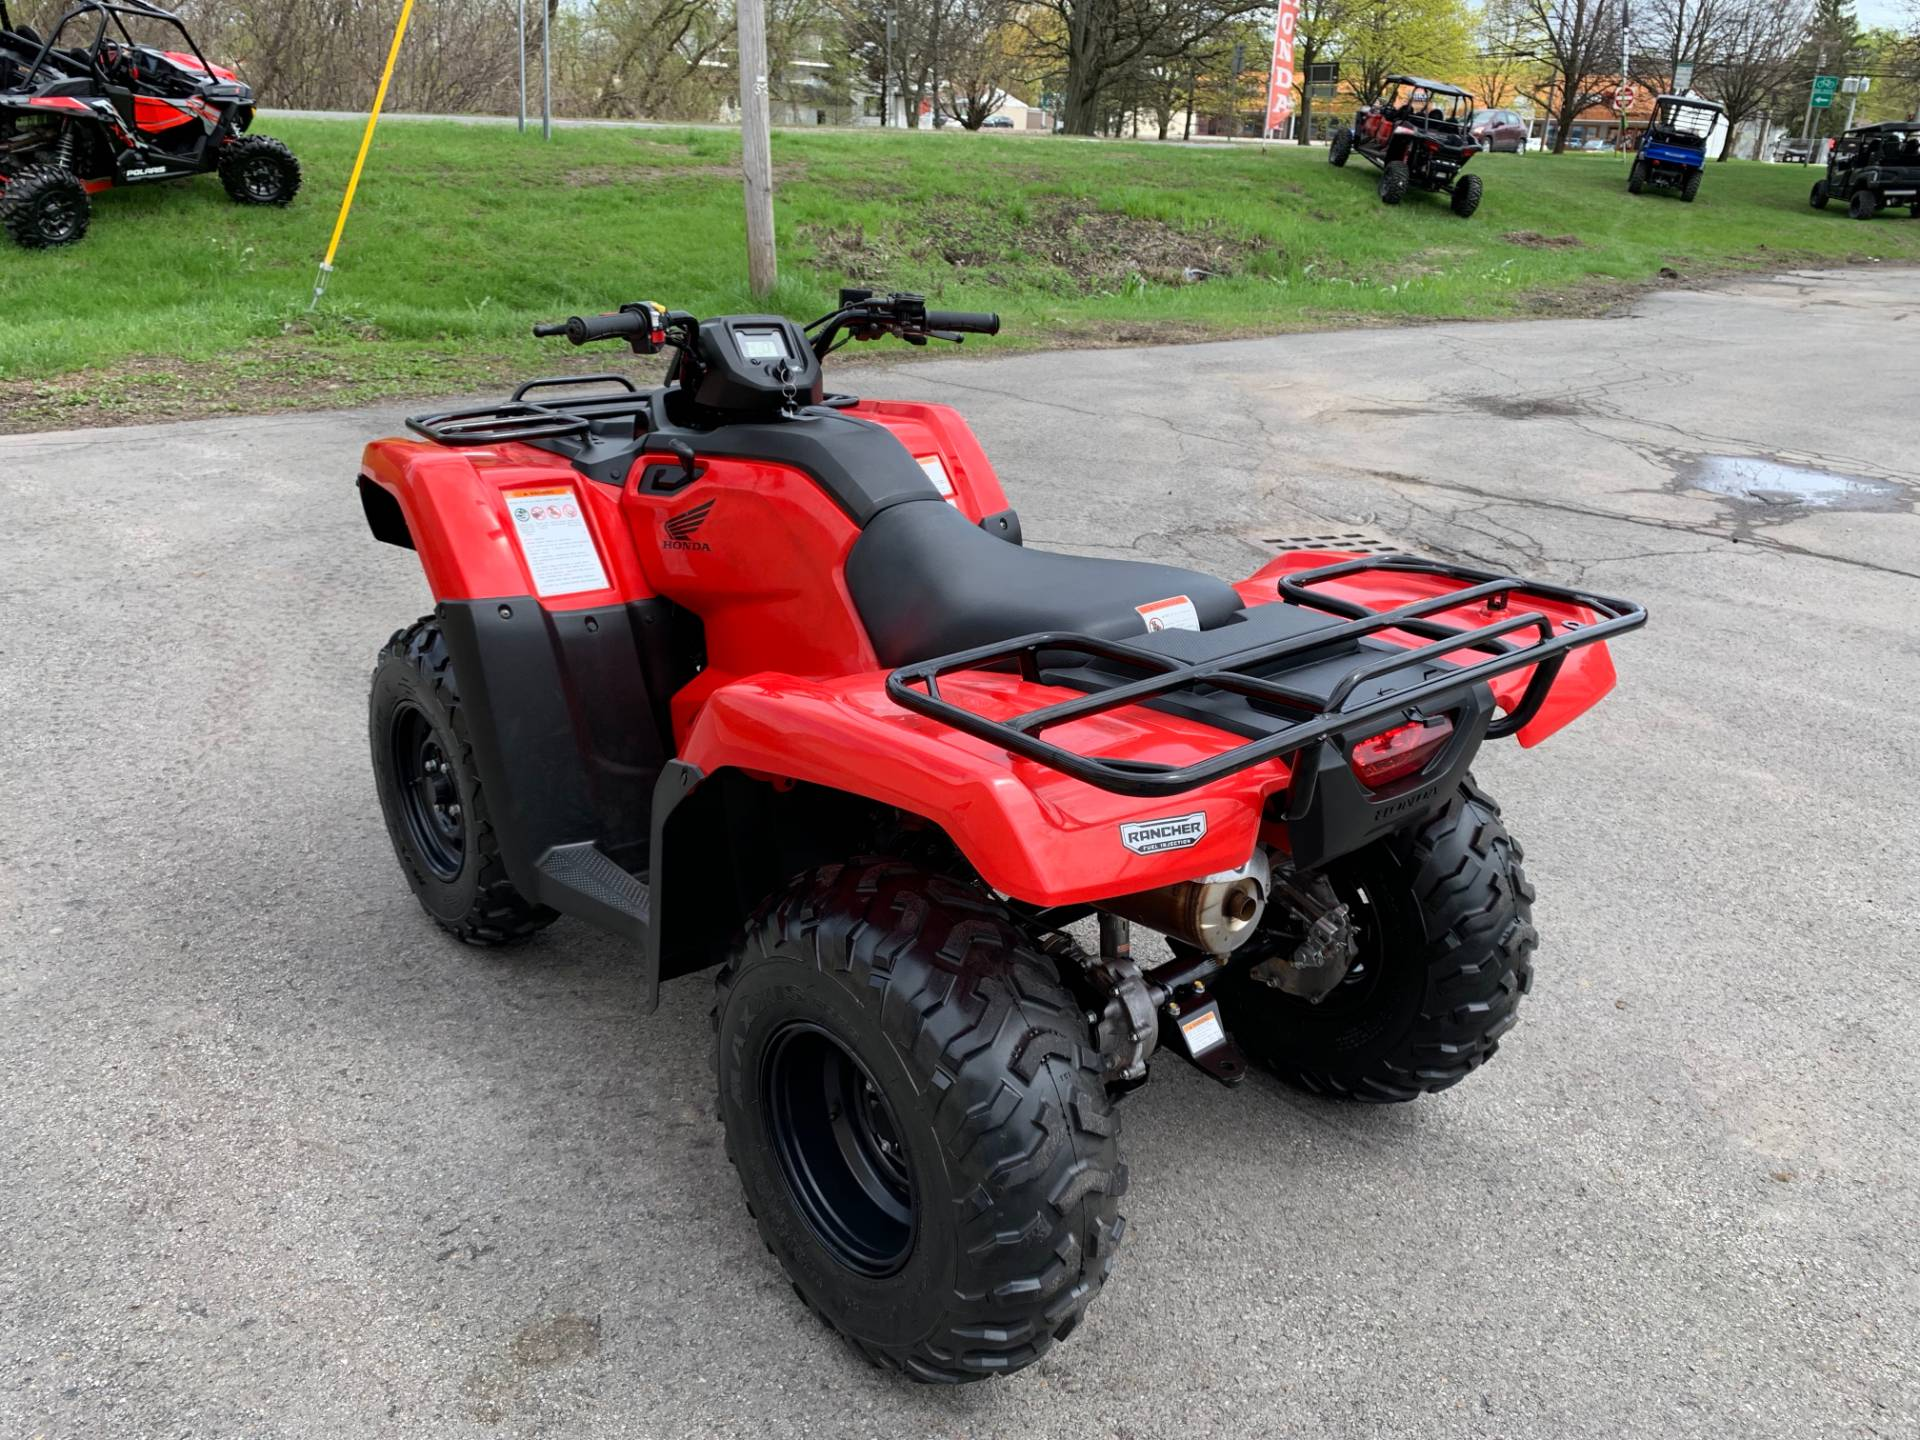 2018 Honda FourTrax Rancher 4x4 in Herkimer, New York - Photo 6